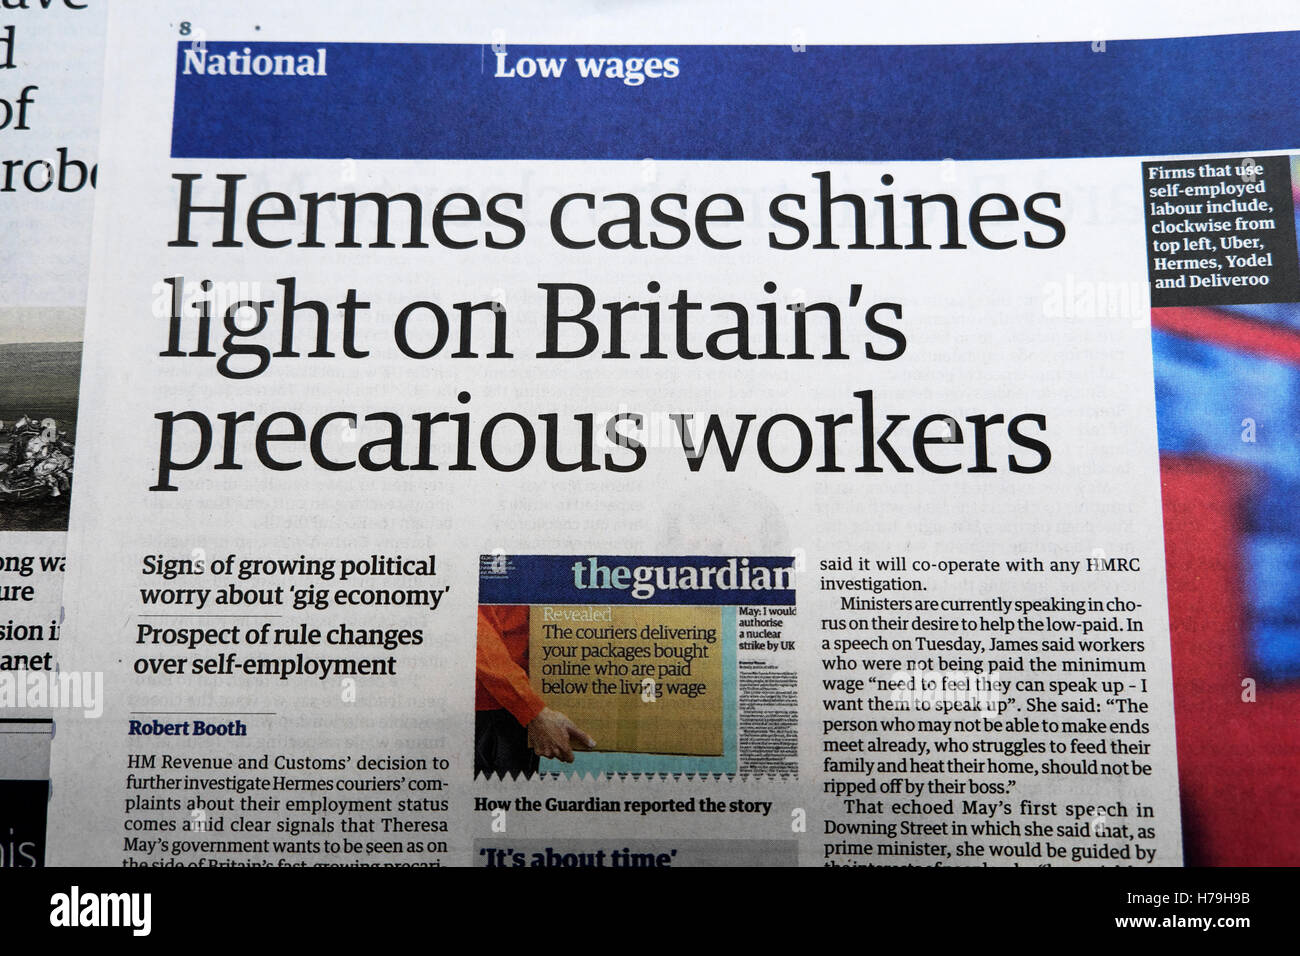 'Hermes case shines light on Britain's precarious workers' Guardian gig economy newspaper article re: - Stock Image